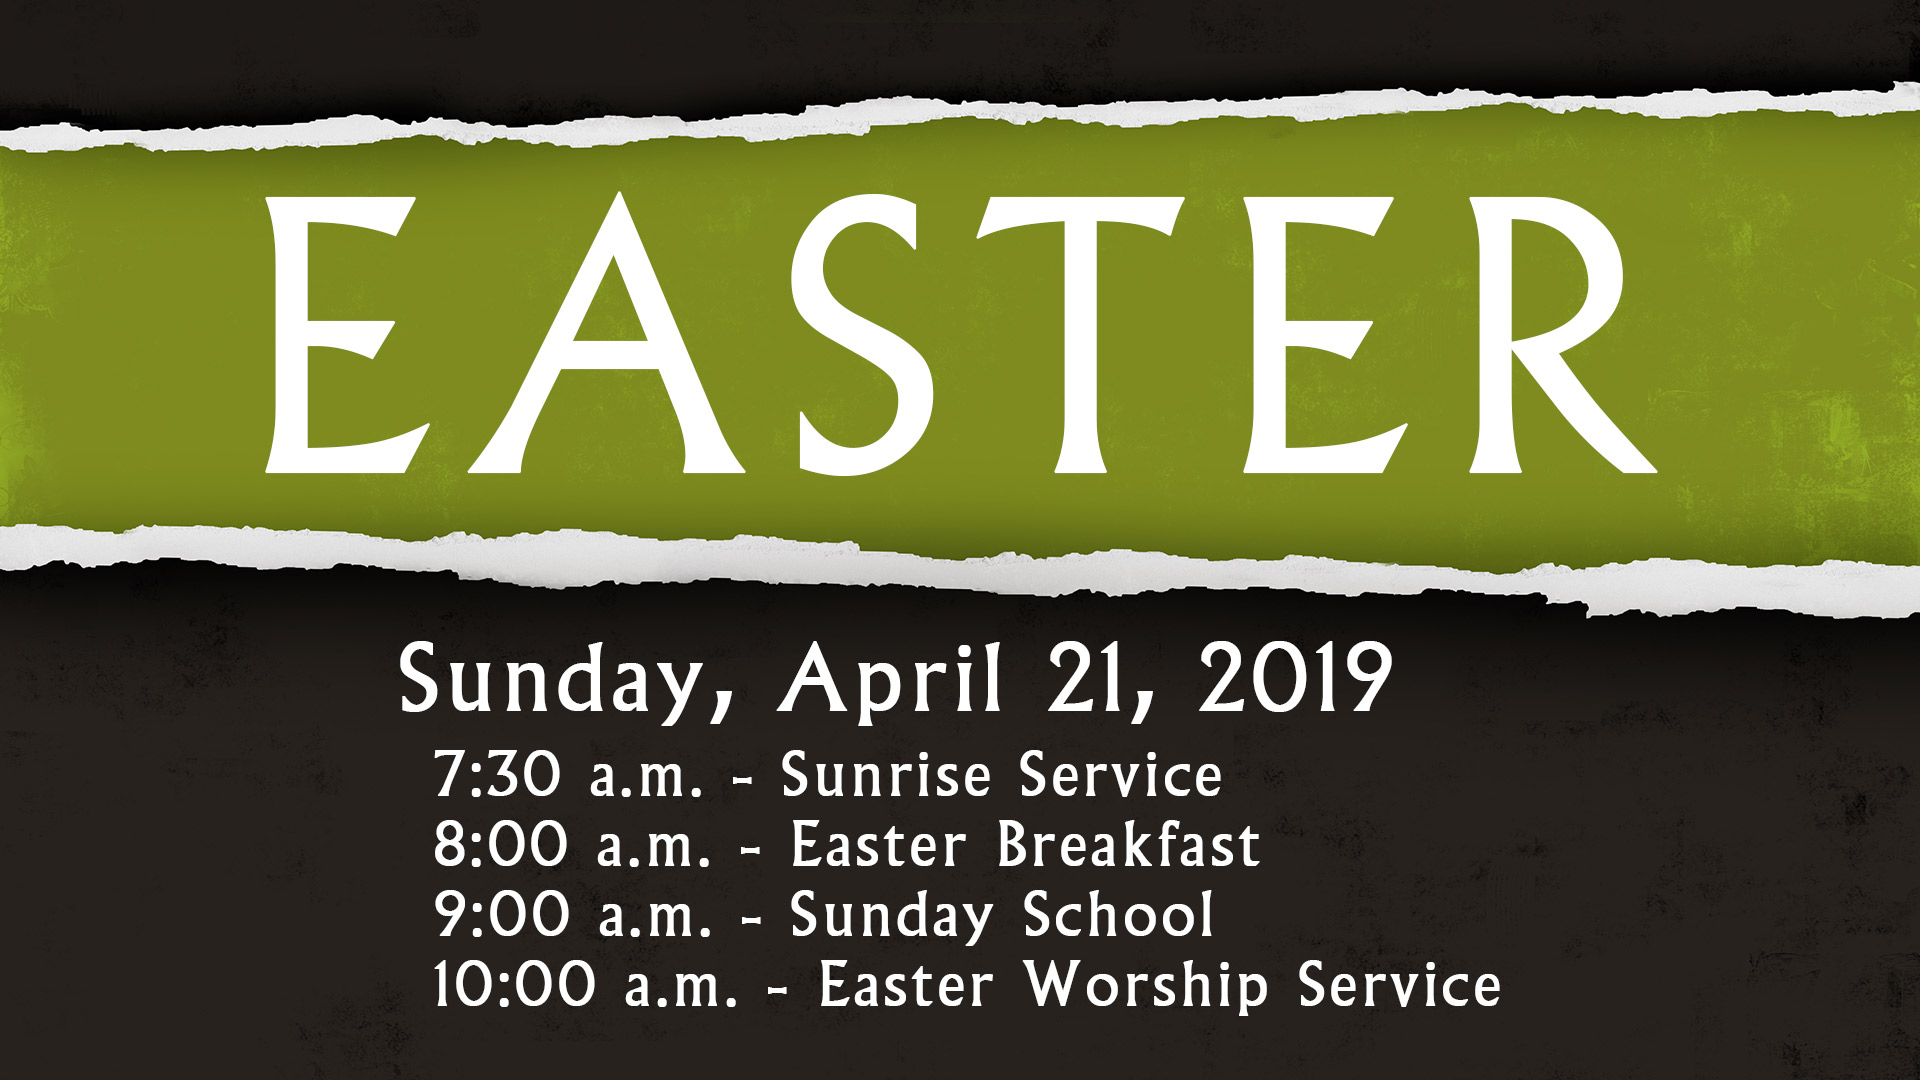 Easter-2019 image